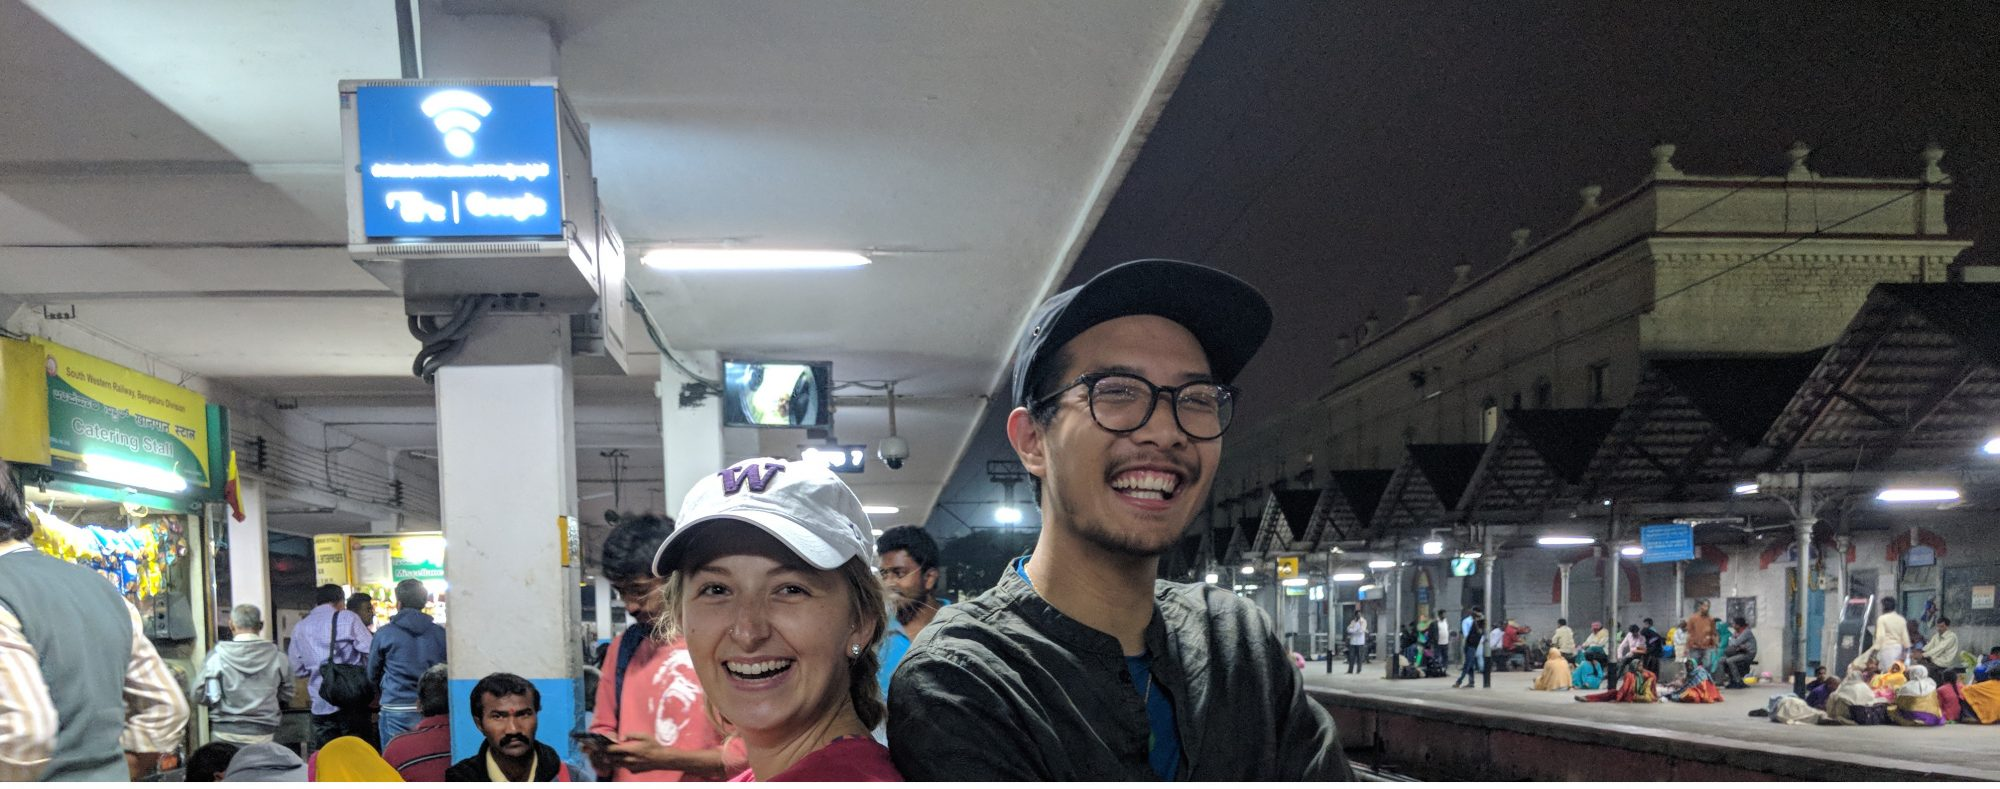 Olivia and Tyler at a train station in India.